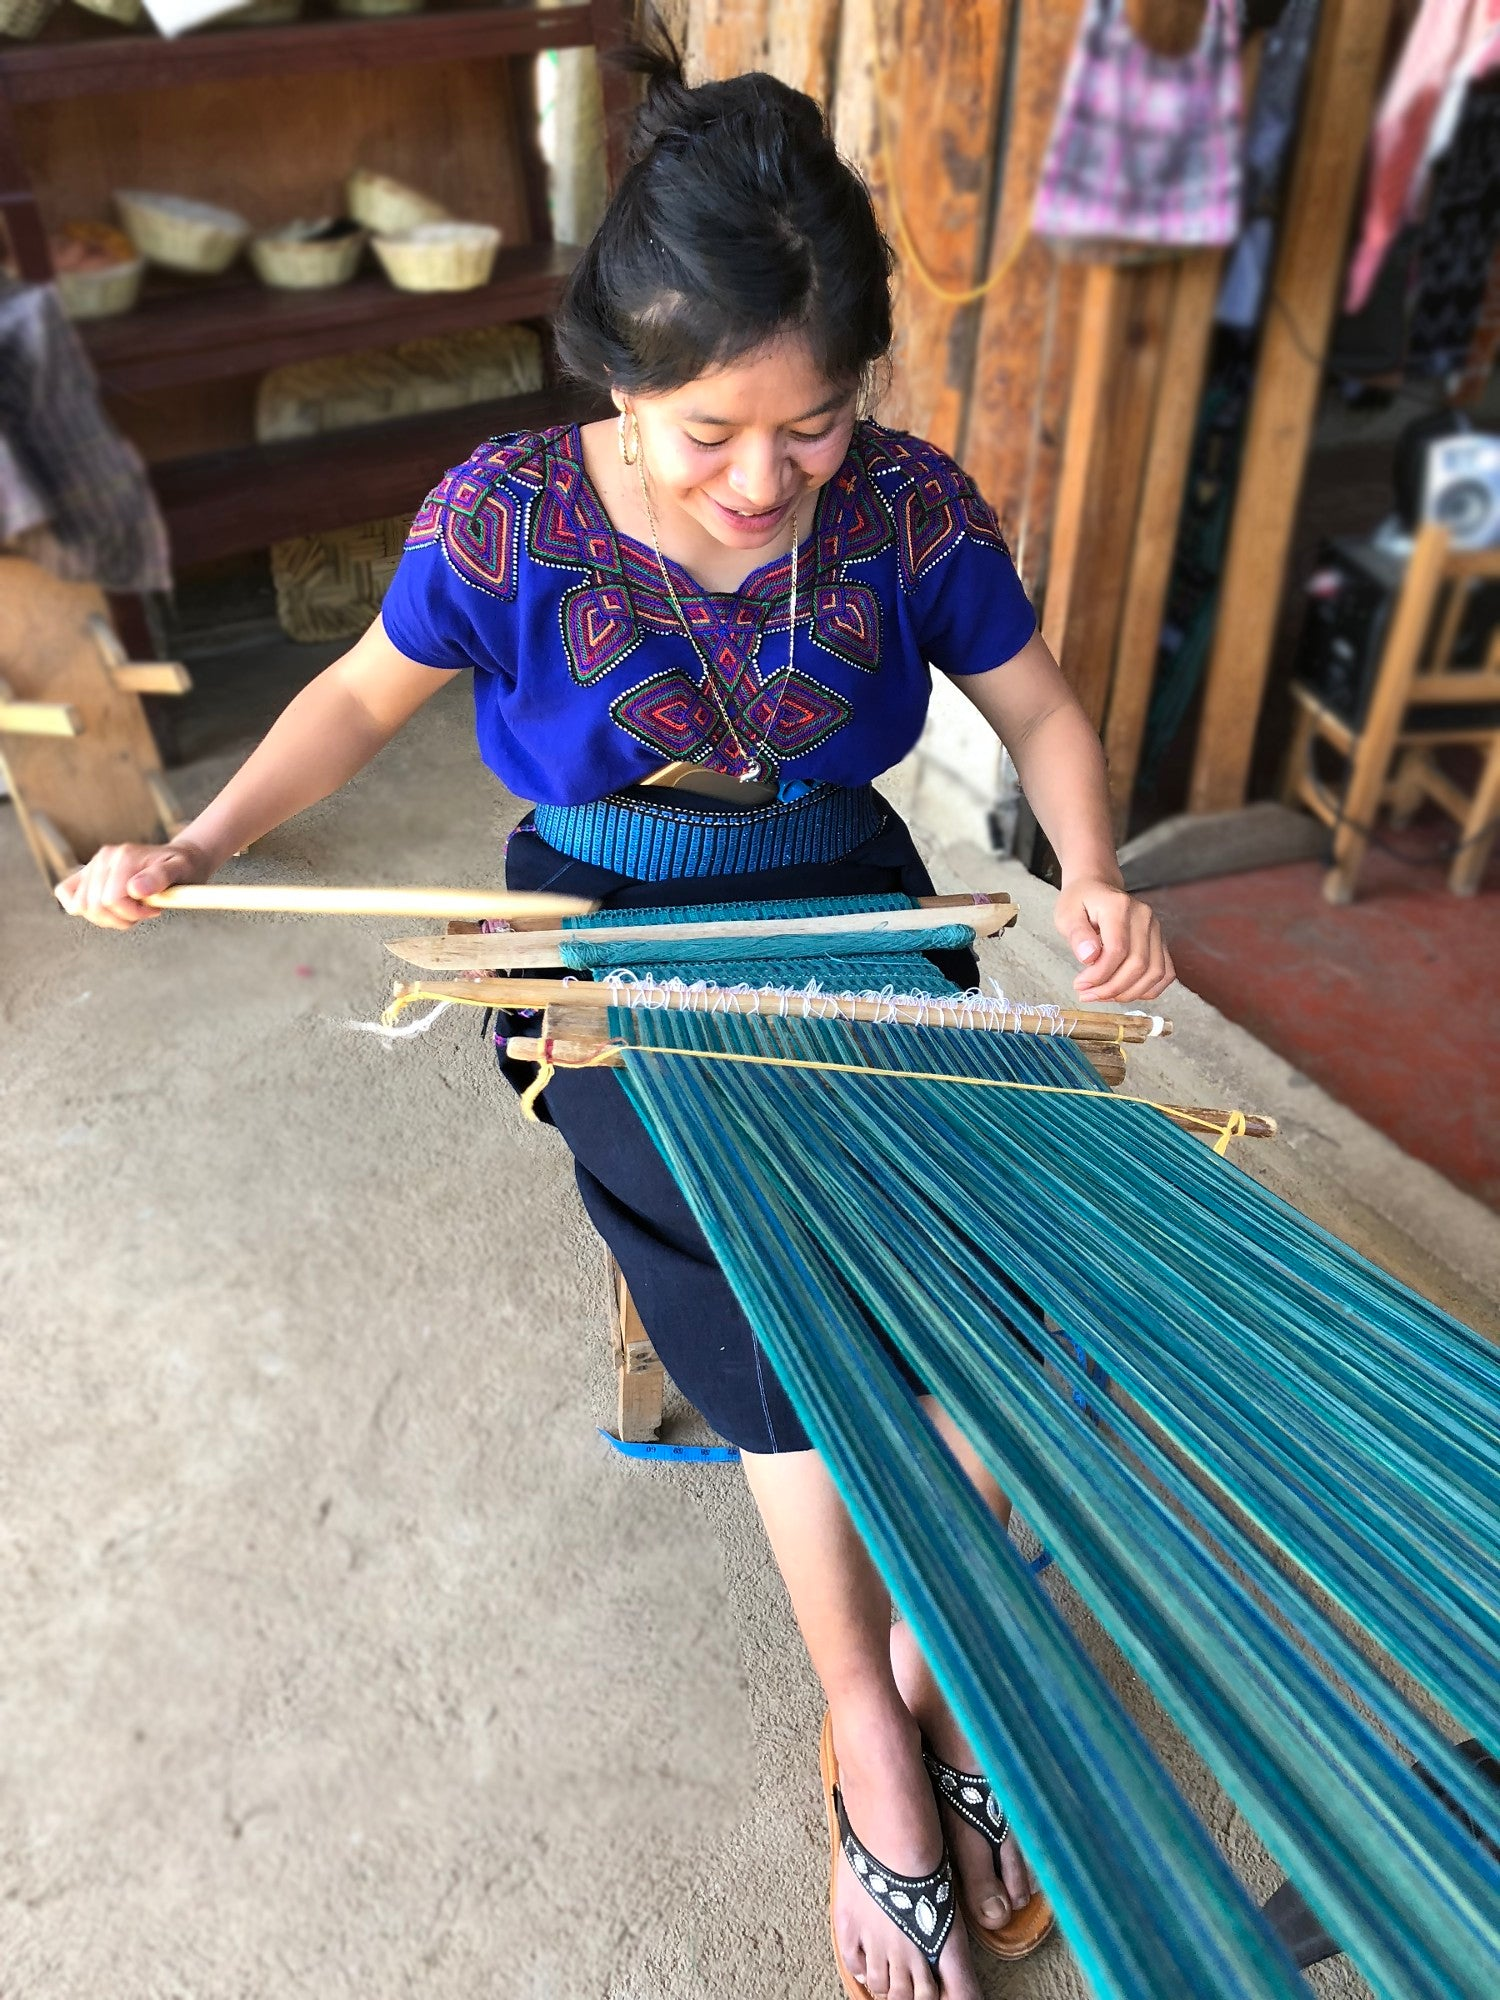 Mayan backstrap loom weaver Amelia Vásquez at her loom at the Quetzalli women's weaving cooperative San Juan La Laguna Guatemala